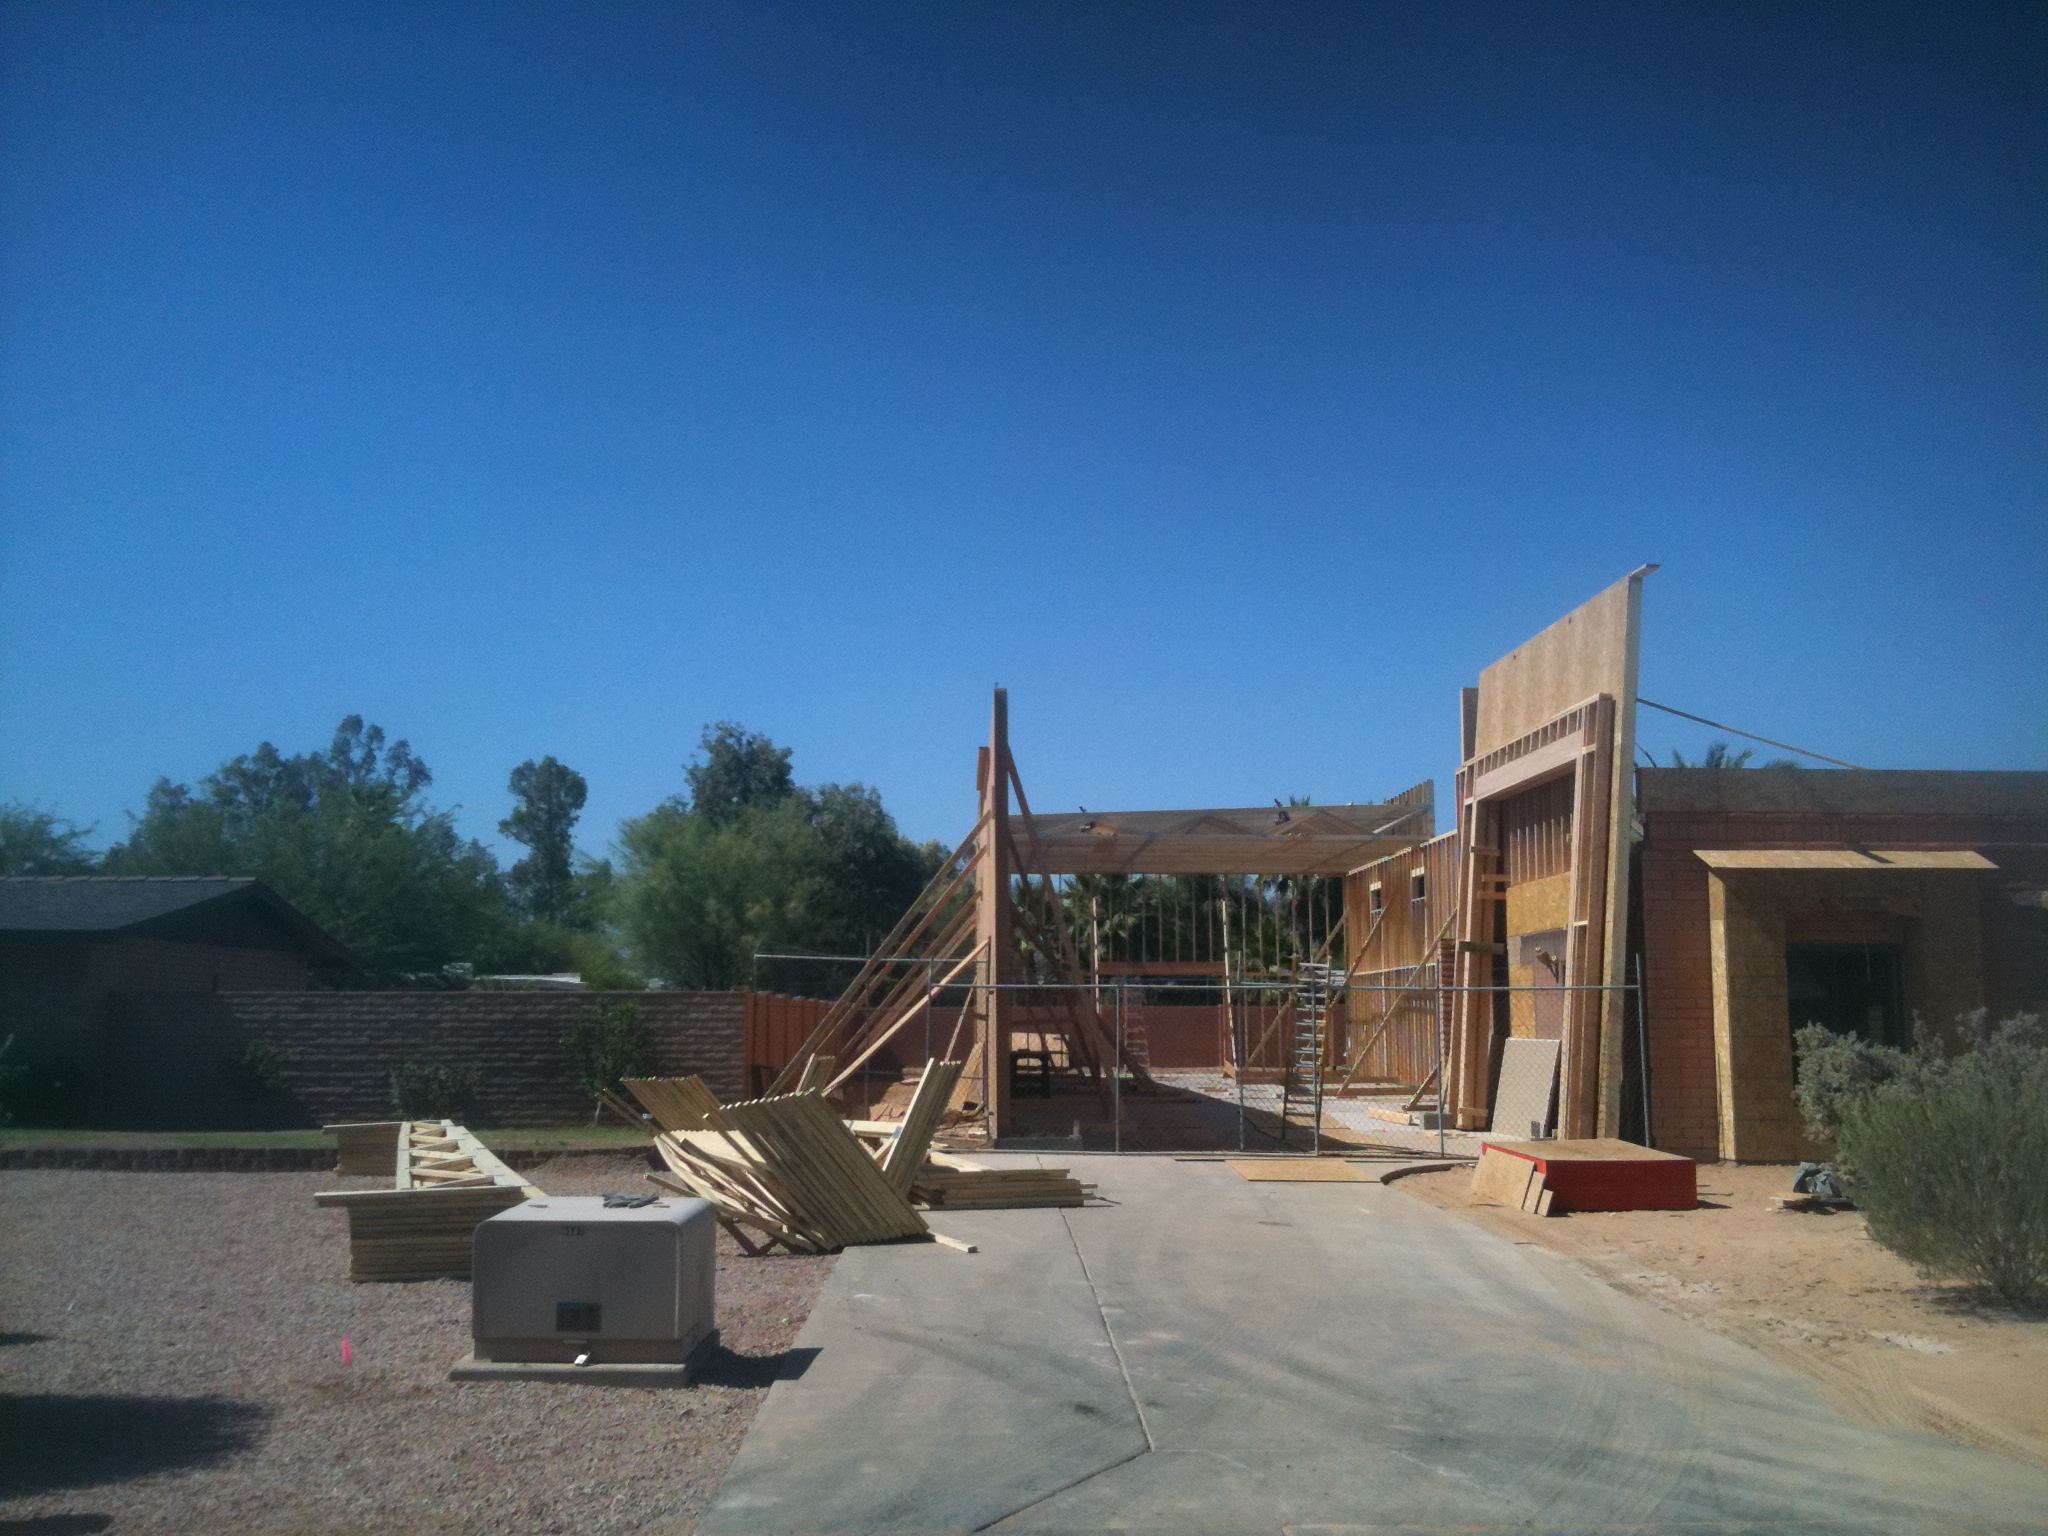 Here is the next stage, with the rear wall of the garage and the second side wall (to the left). Note that on the right of the photo, the front wall of the RV garage (where the garage door will be) has already been framed and that section is leaning at a slight angle.